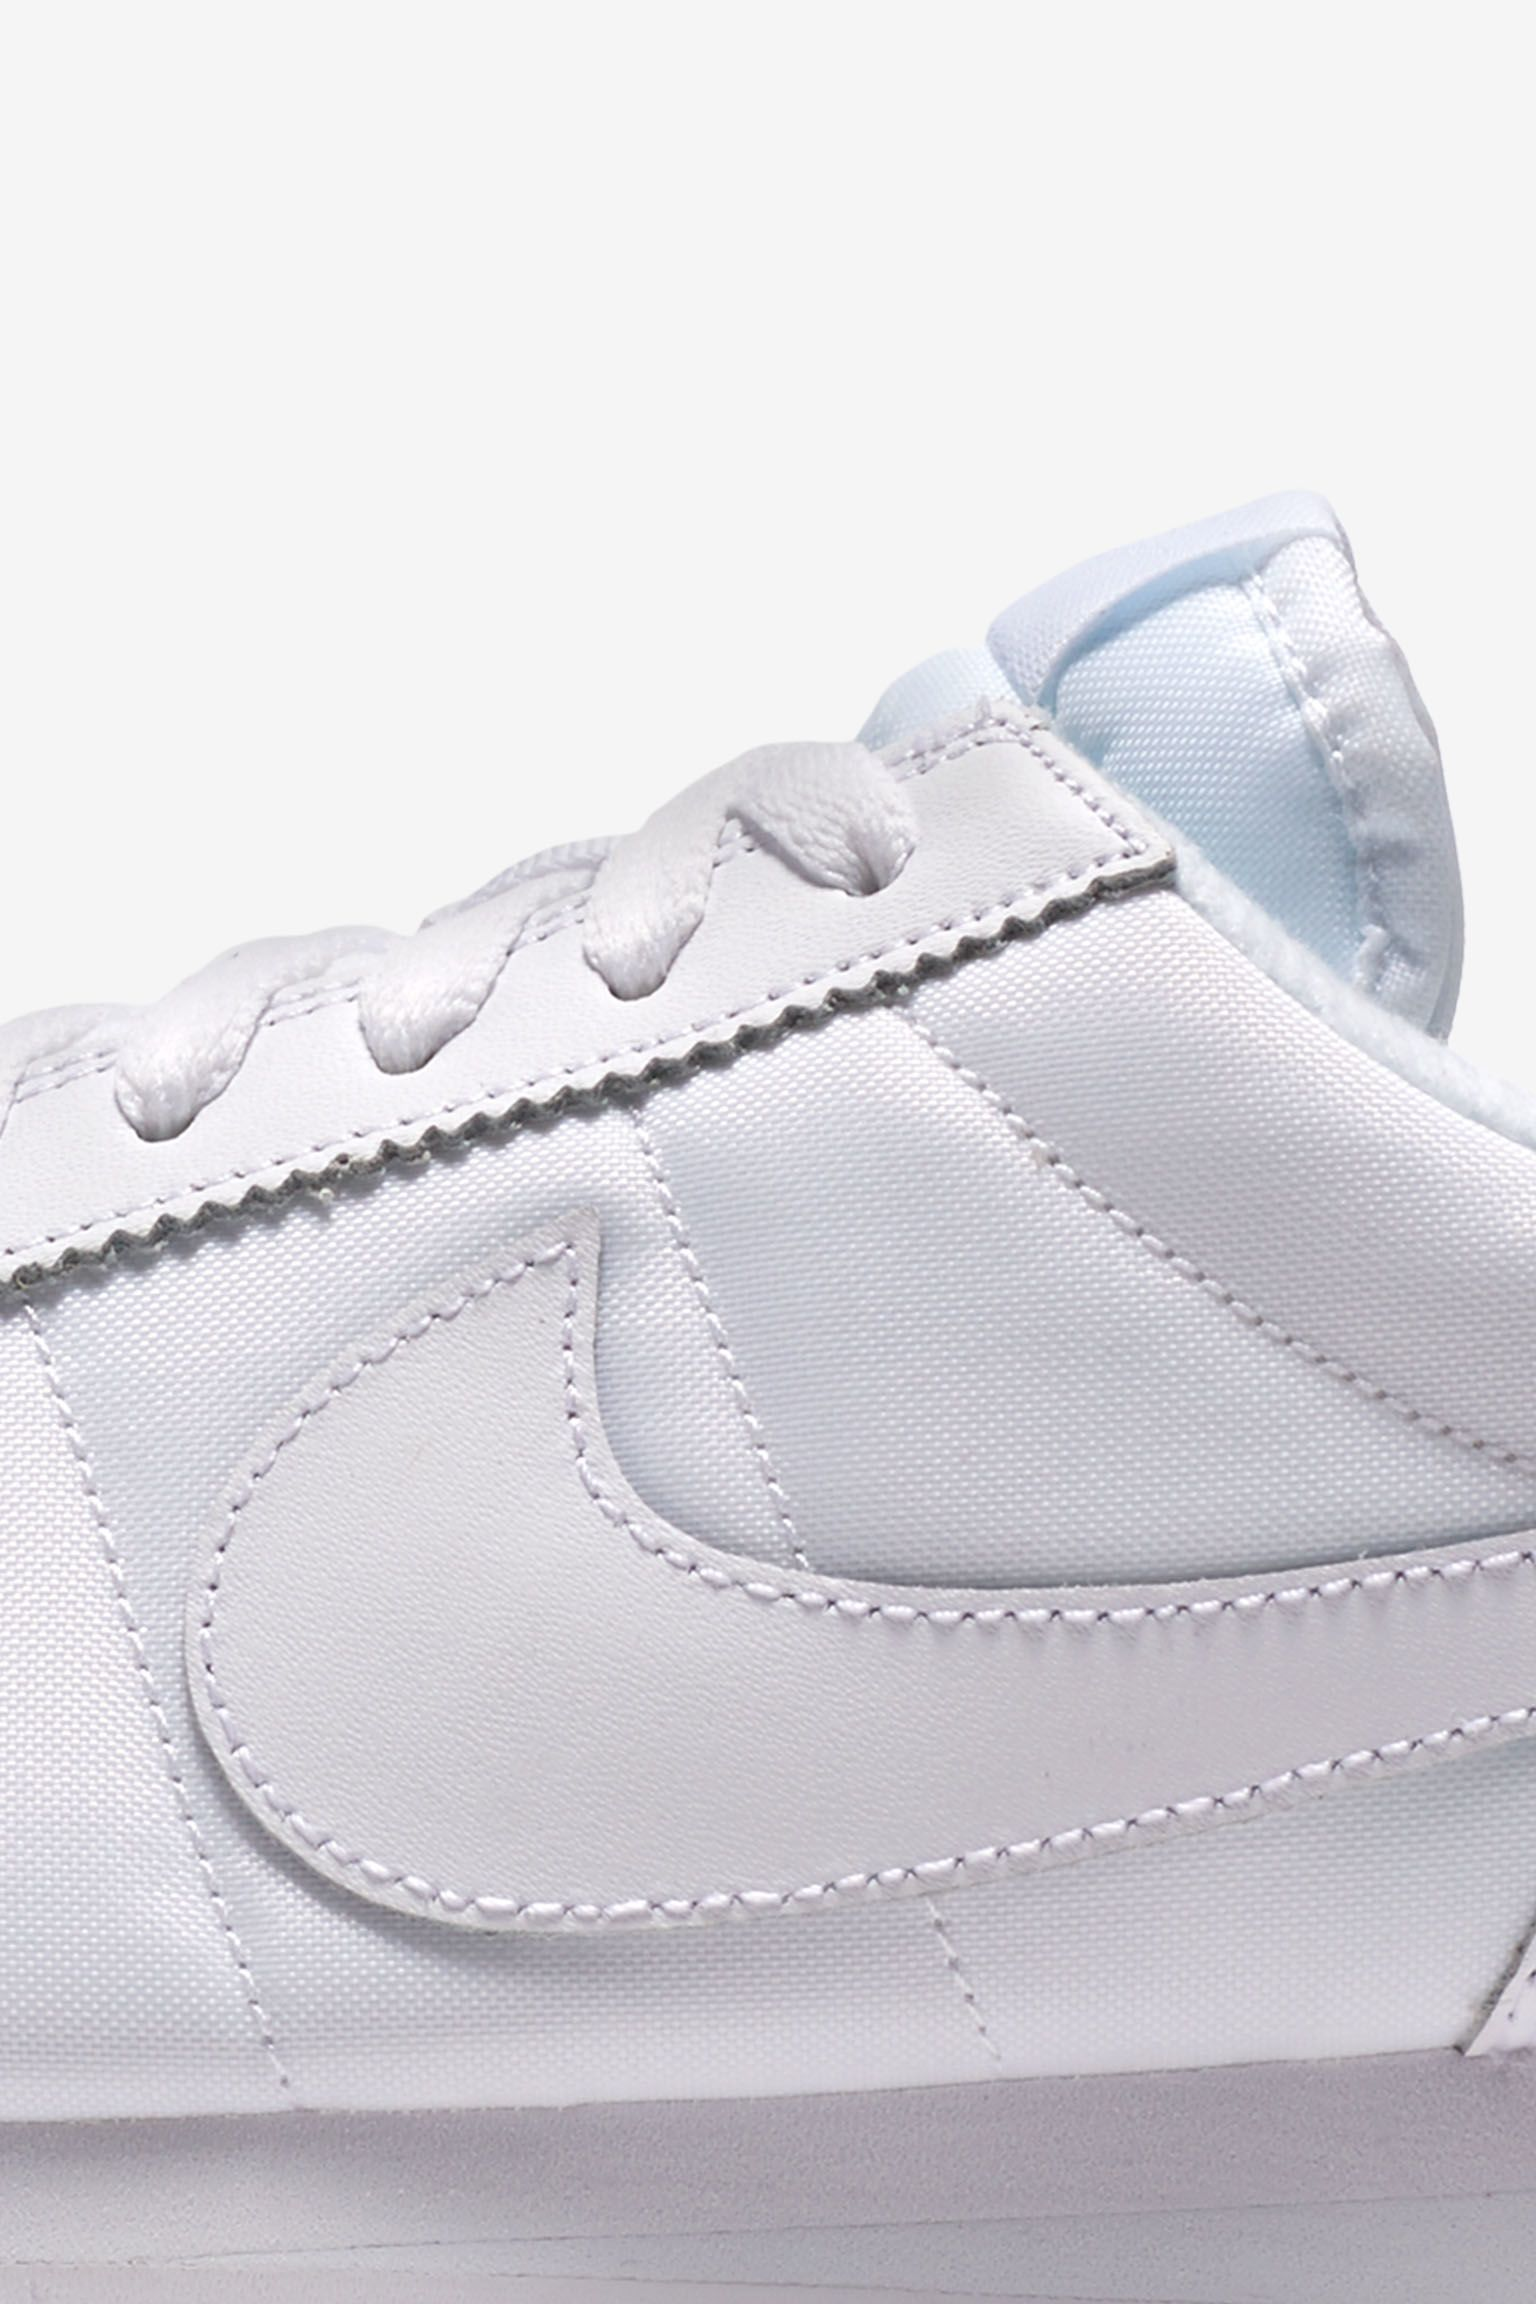 Nike Cortez 'All White'